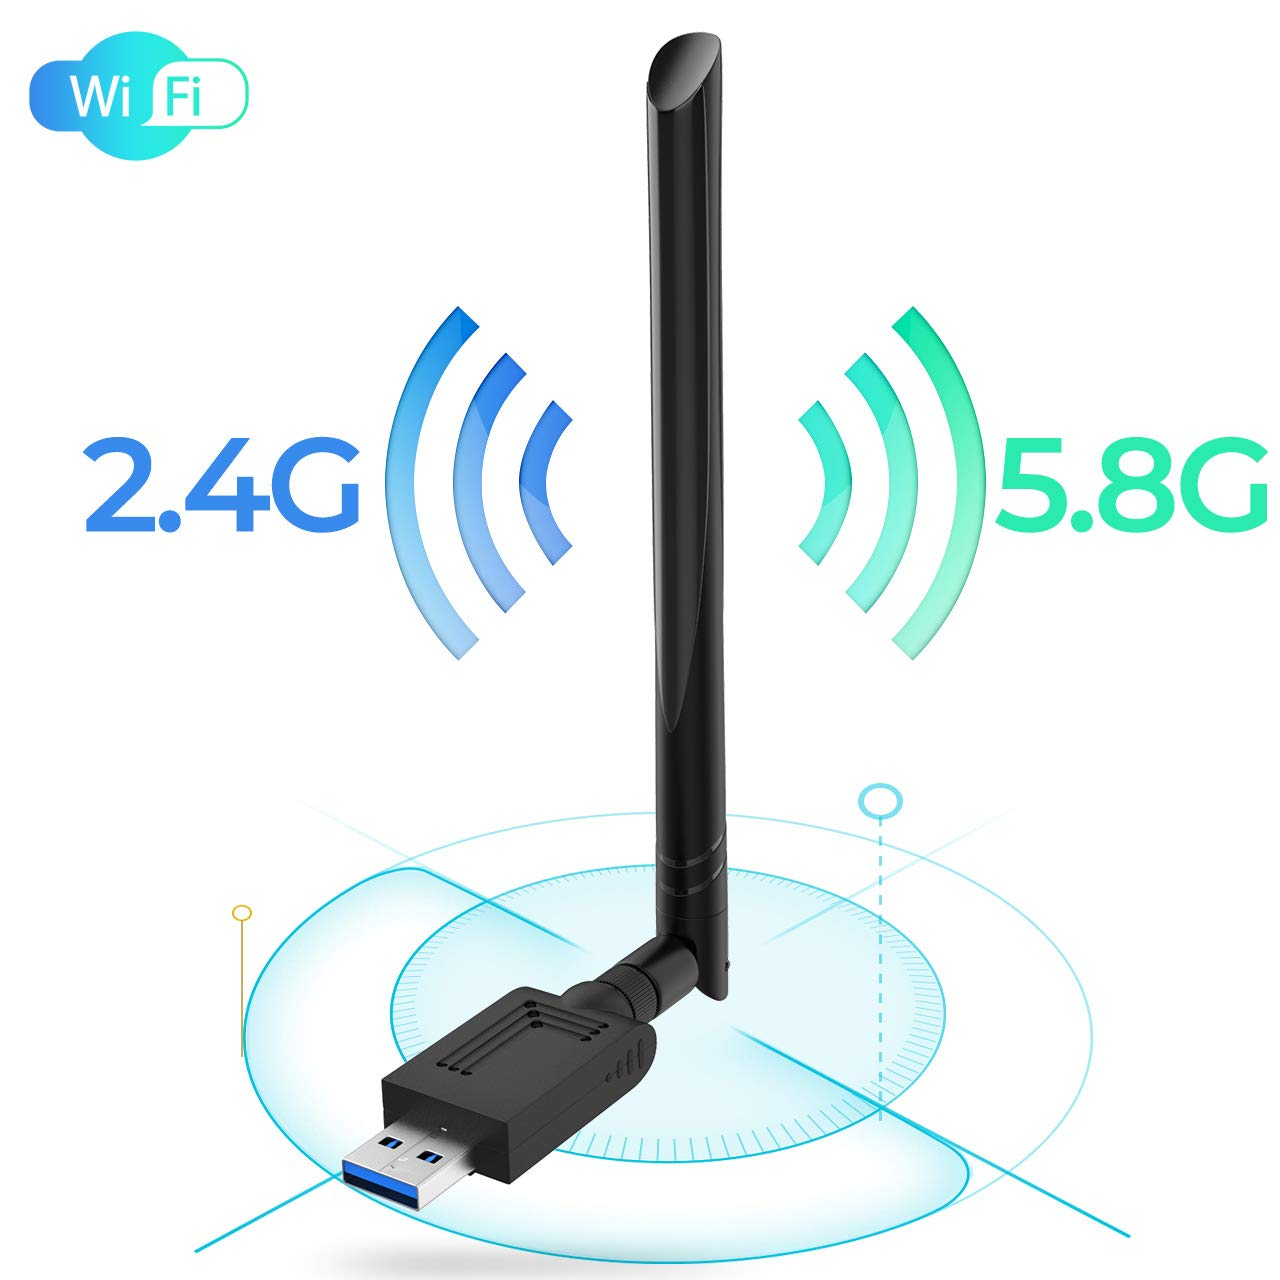 USB WiFi Adapter, 1200Mbps Mini 802.11ac Dual Band 2.4GHz/5.8GHz Wireless Network Adapter with USB 3.0 Wireless Network Antenna for PC/Desktop/Laptop Support Windows 10/8/8.1/7/Vista/XP/Mac 10.5-10.13 by mizoo